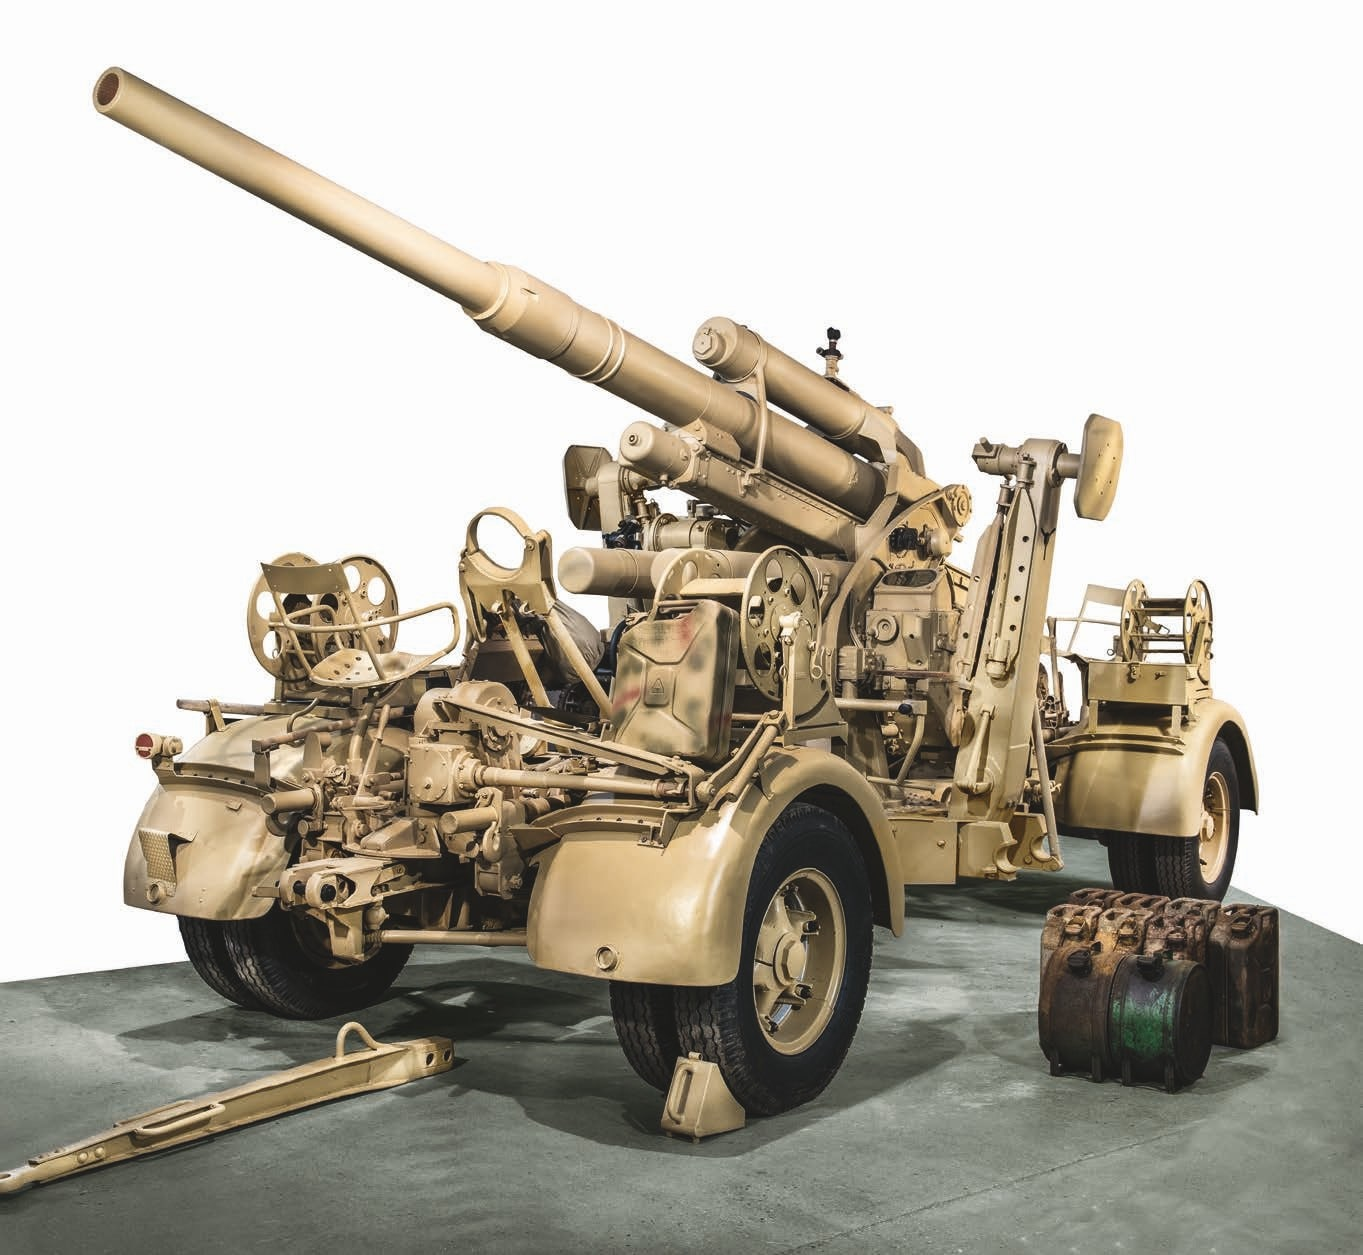 This Flak 88 was actually captured by U.S. troops in France and was positioned in defense of a German Command Center located in an occupied chateau near Cherbourg. The museum rescued it from a scrap yard in 2014 and restored it.